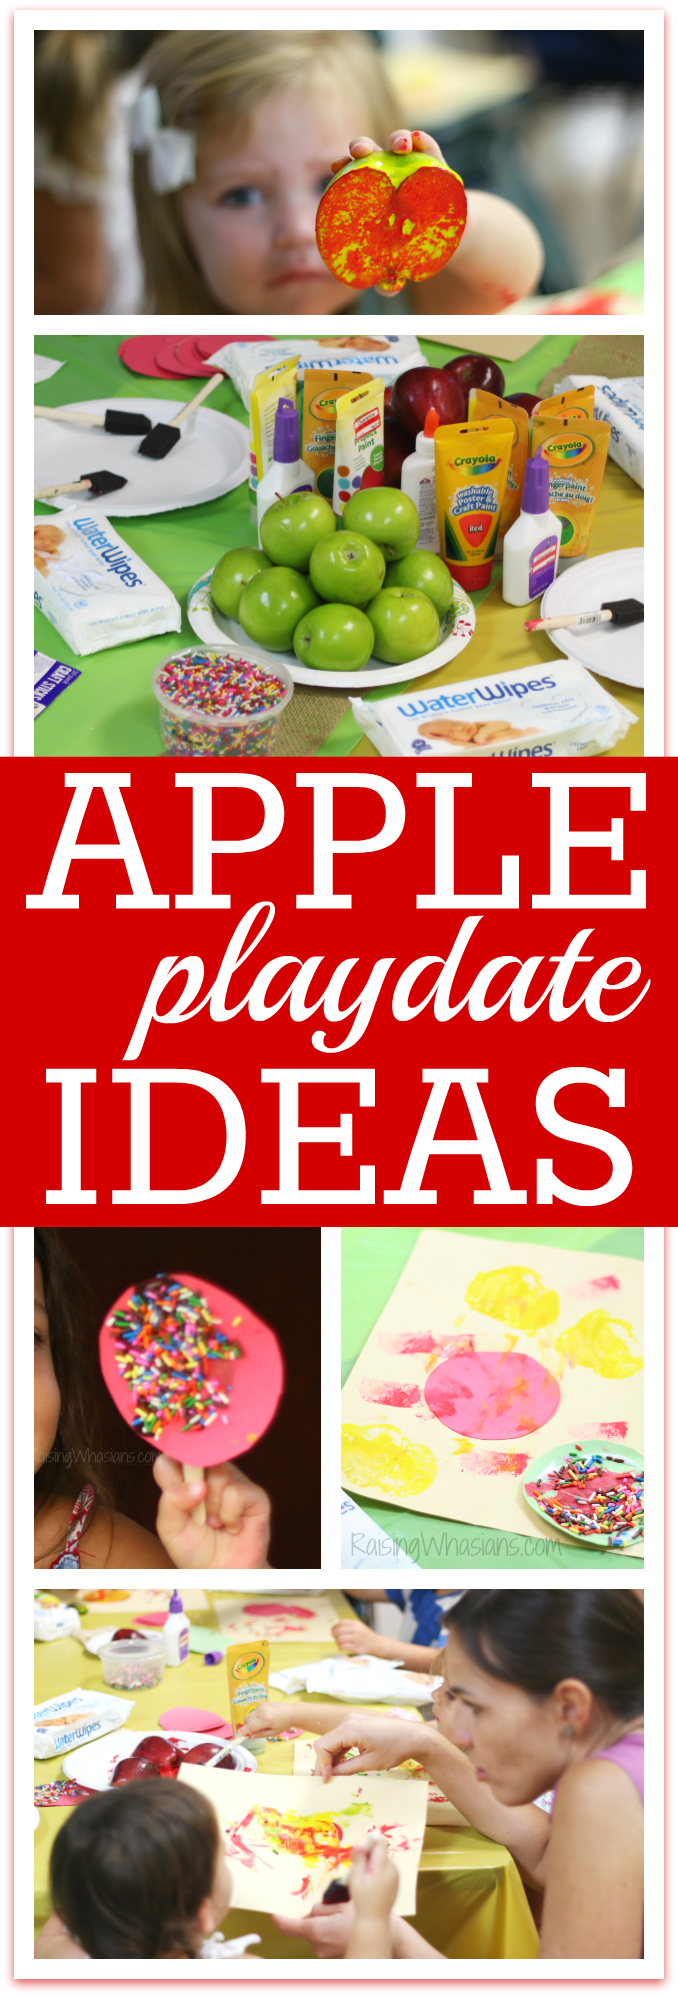 Apple playdate ideas for preschoolers